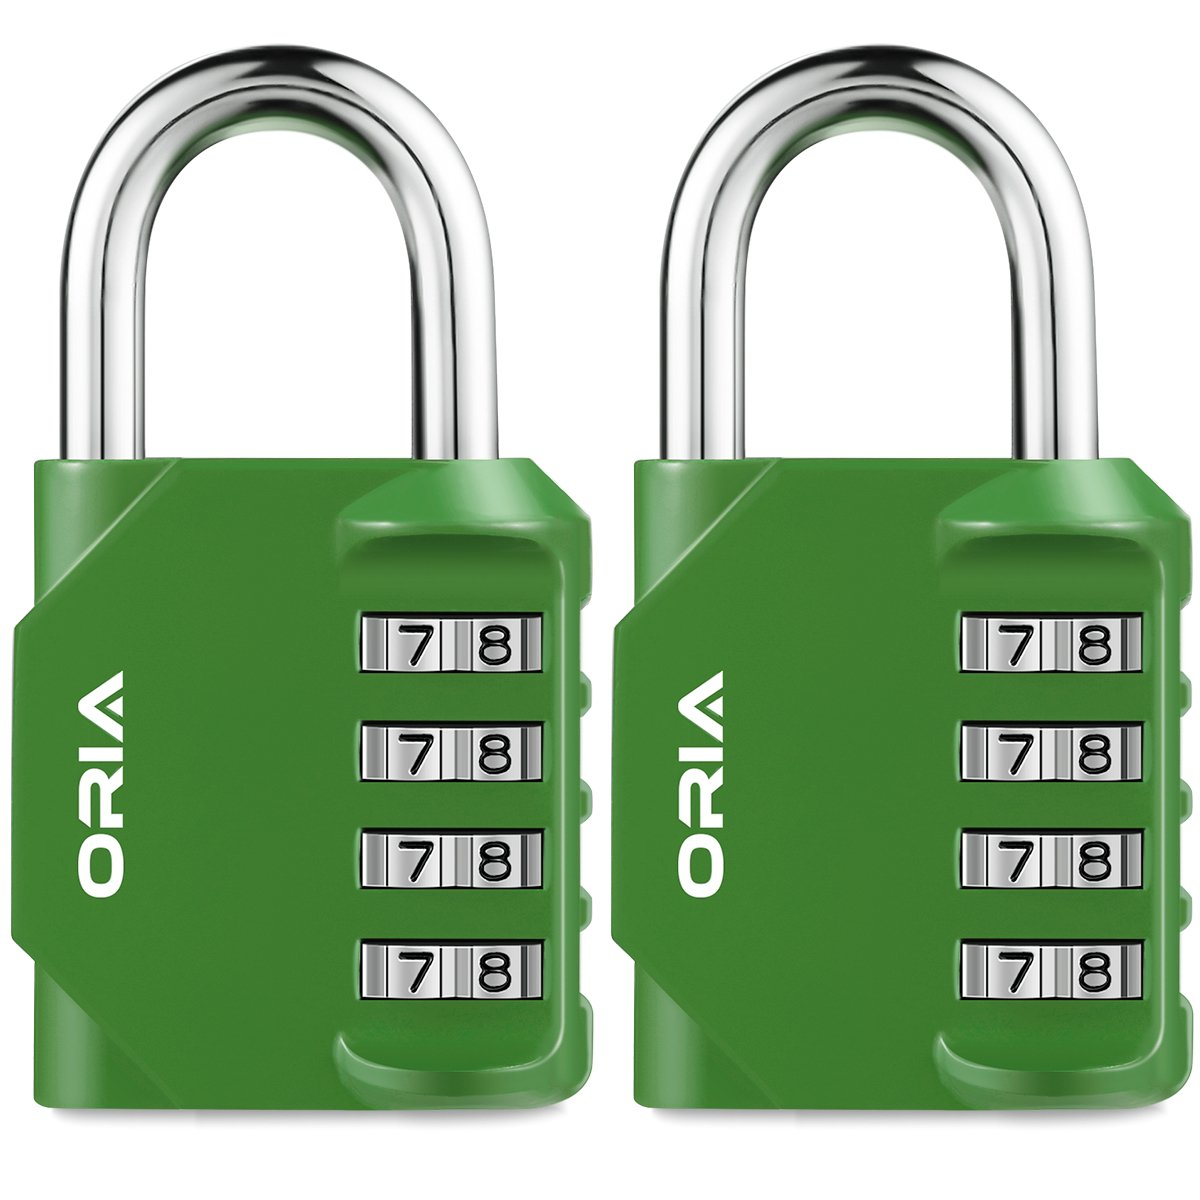 ORIA Combination Lock, 4 Digit Combination Padlock Set, Safety for School, Employee, Gym or Sports Locker, Case, Toolbox, Fence, Hasp Cabinet and Storage, Green and 2 Pack